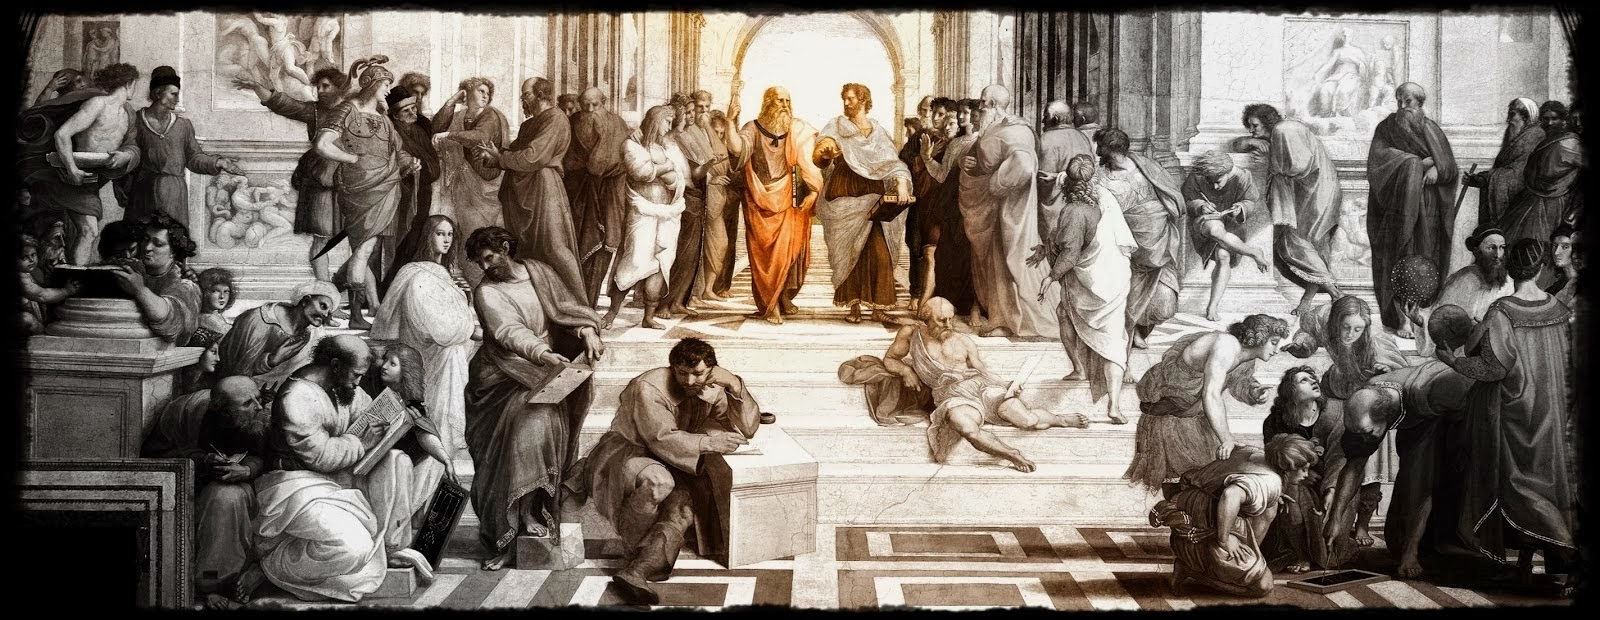 School of Athens, Greece - The Ancient Greek Philosophers